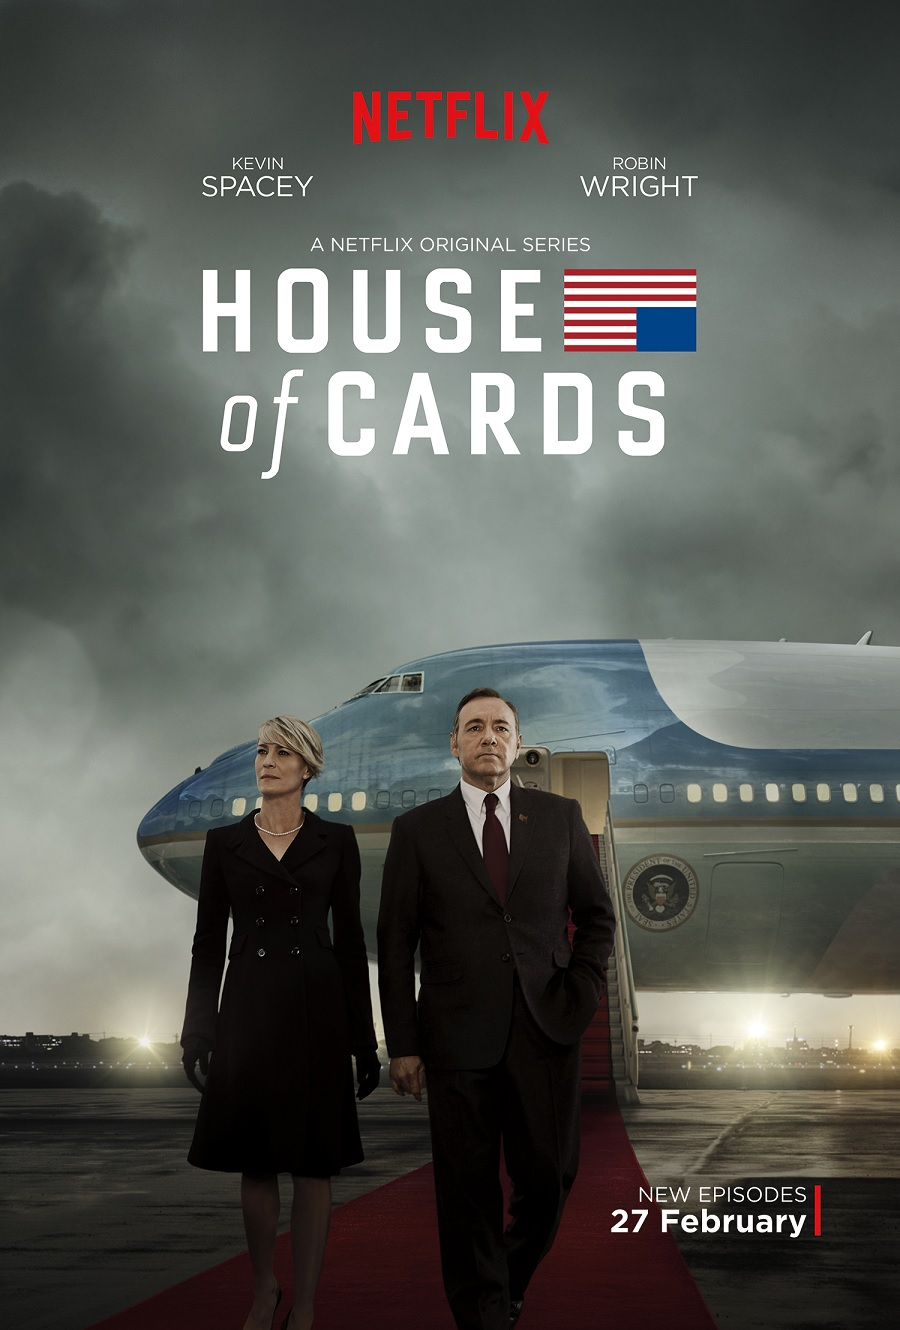 House of Cards Season 3 Poster